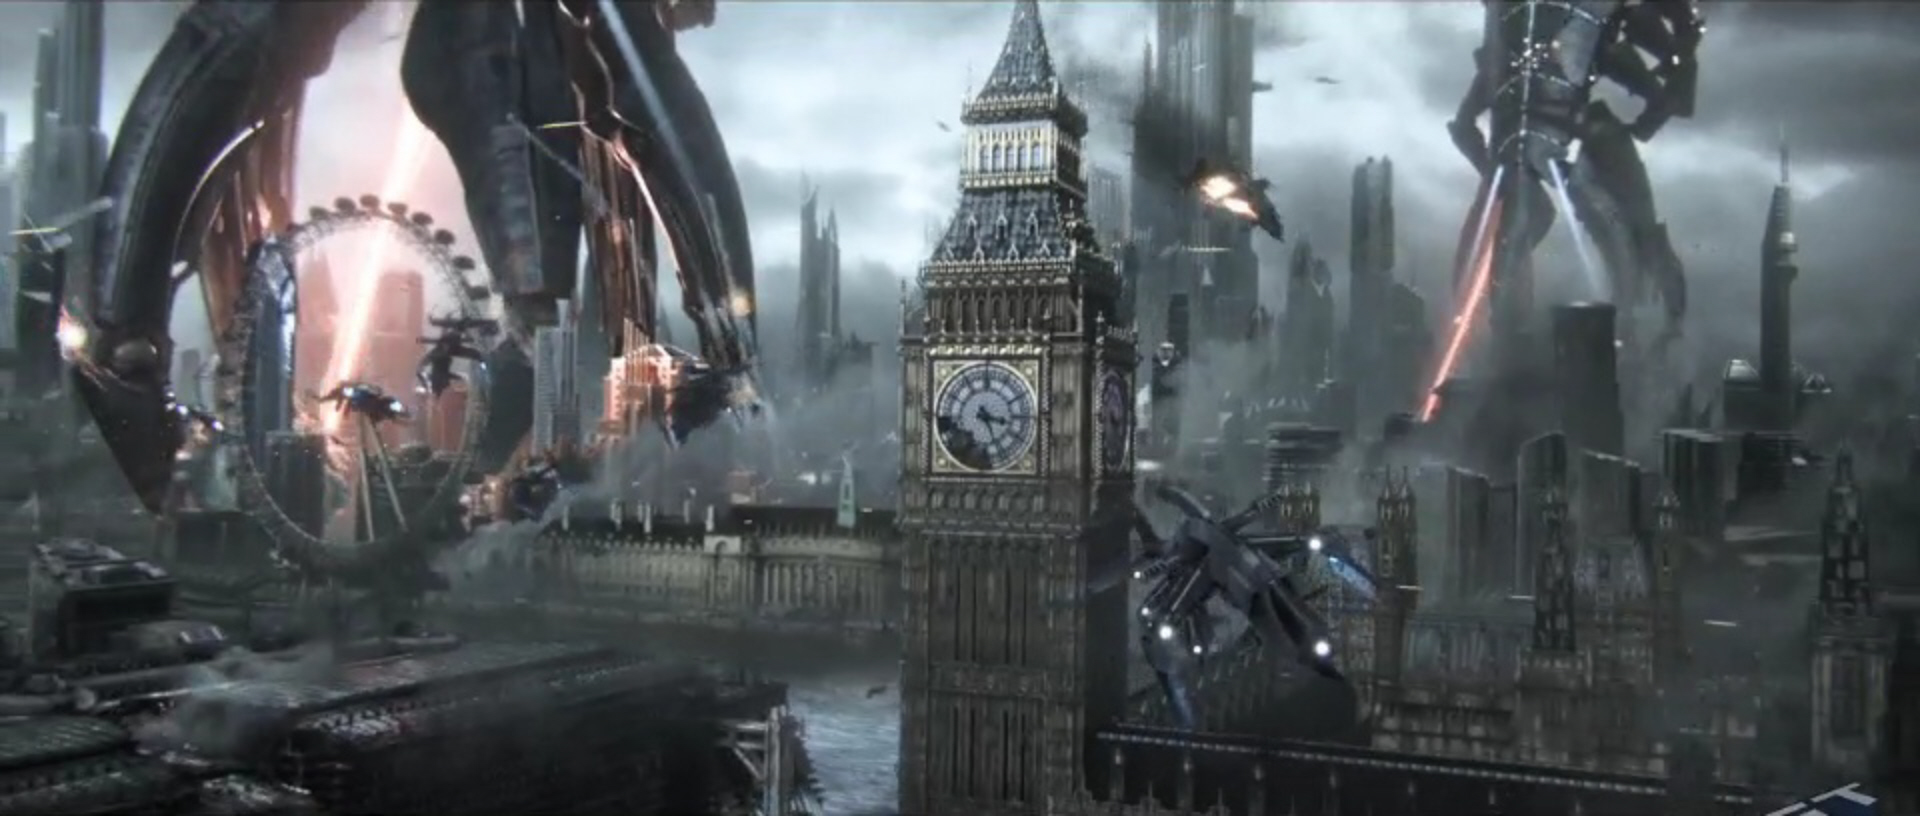 Mass Effect 3 Wallpaper Big Ben Still Ticks